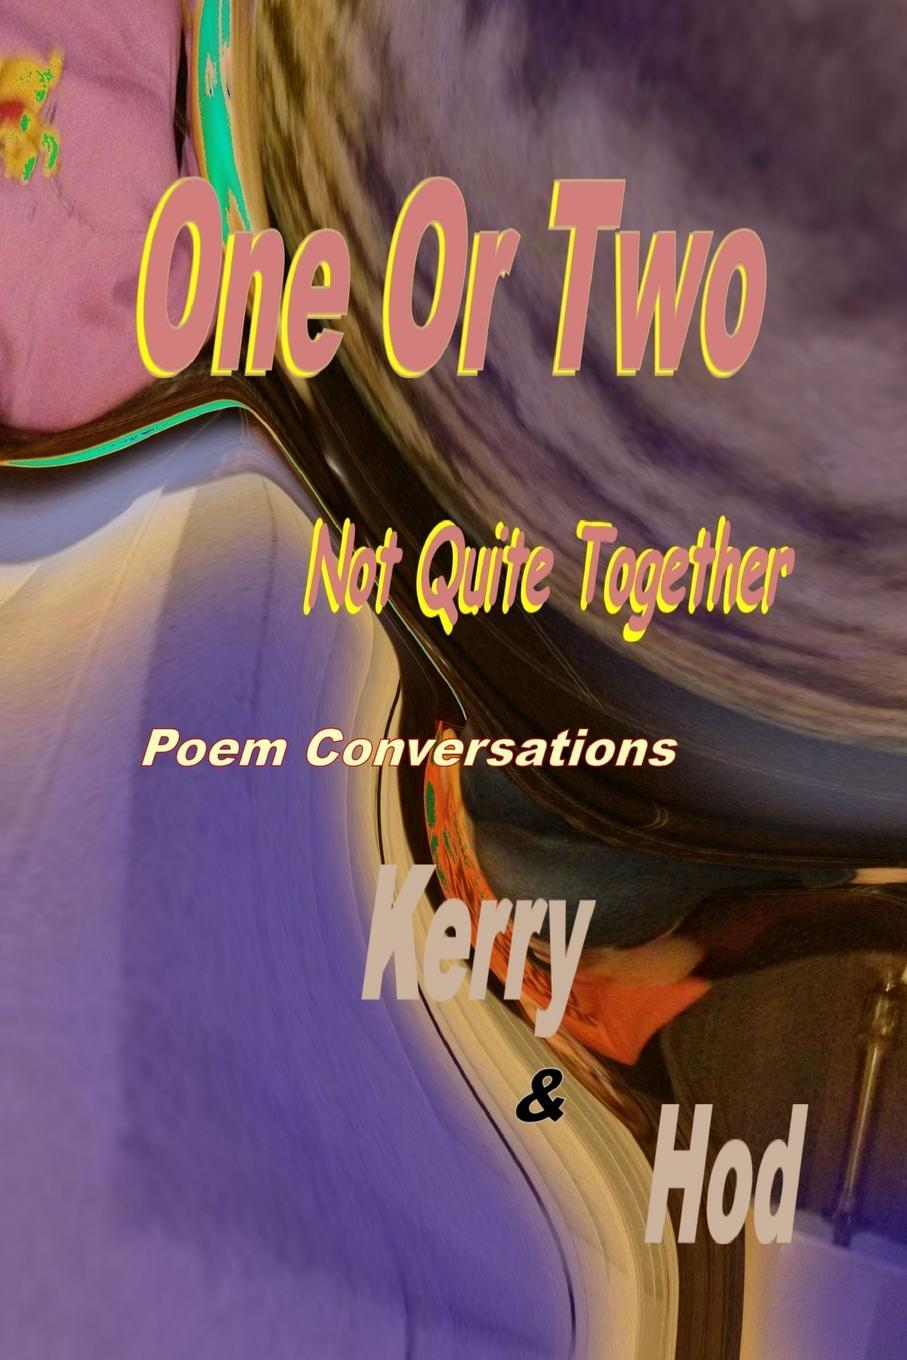 Kerry, Hod One Or Two; Not Quite Together Poem Conversations lynne gleason please forward do not delete book two